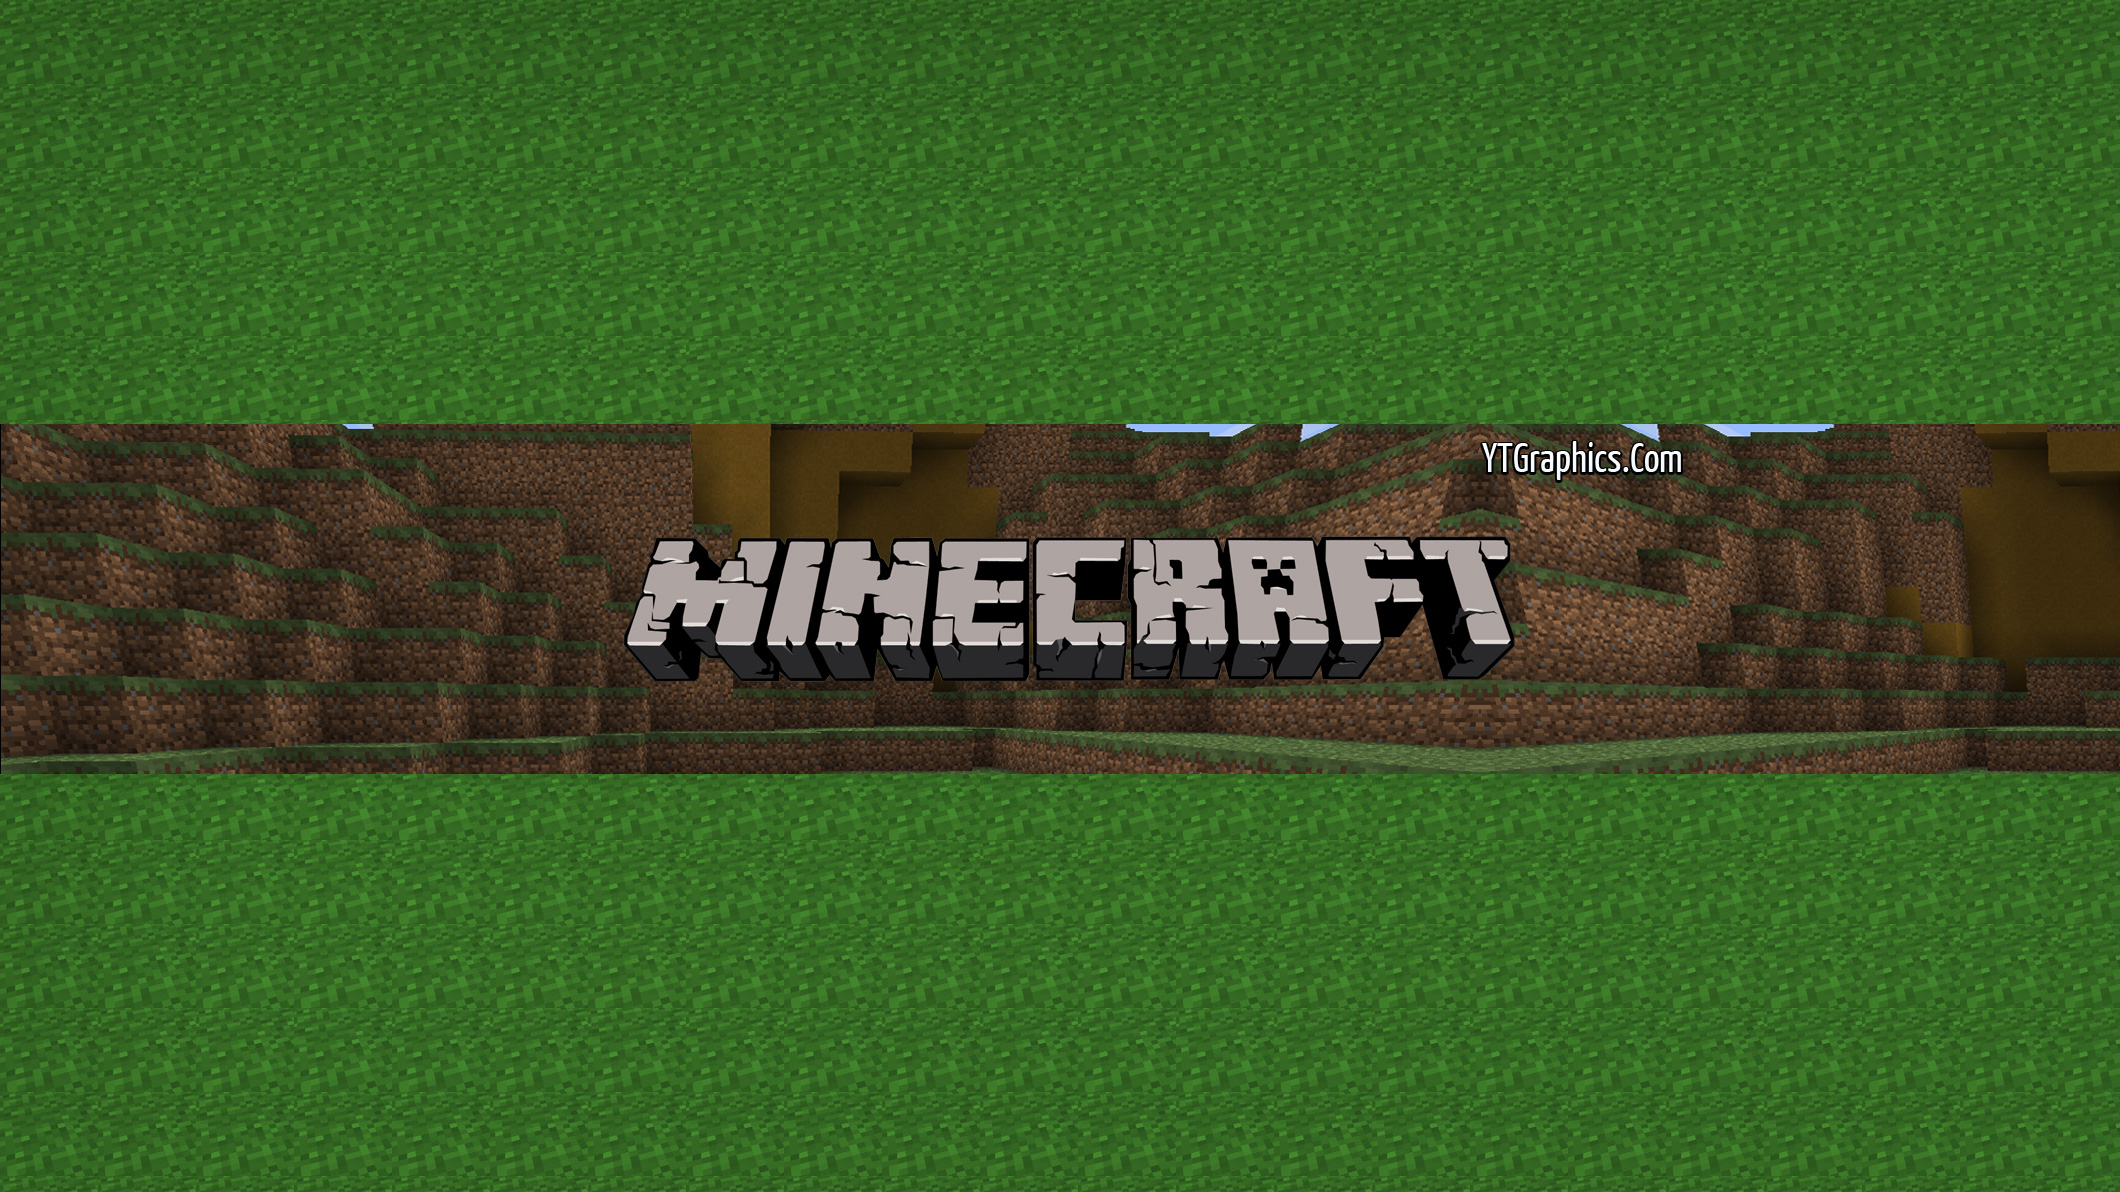 Minecraft Channel Art 4 - YouTube Channel Art Banners